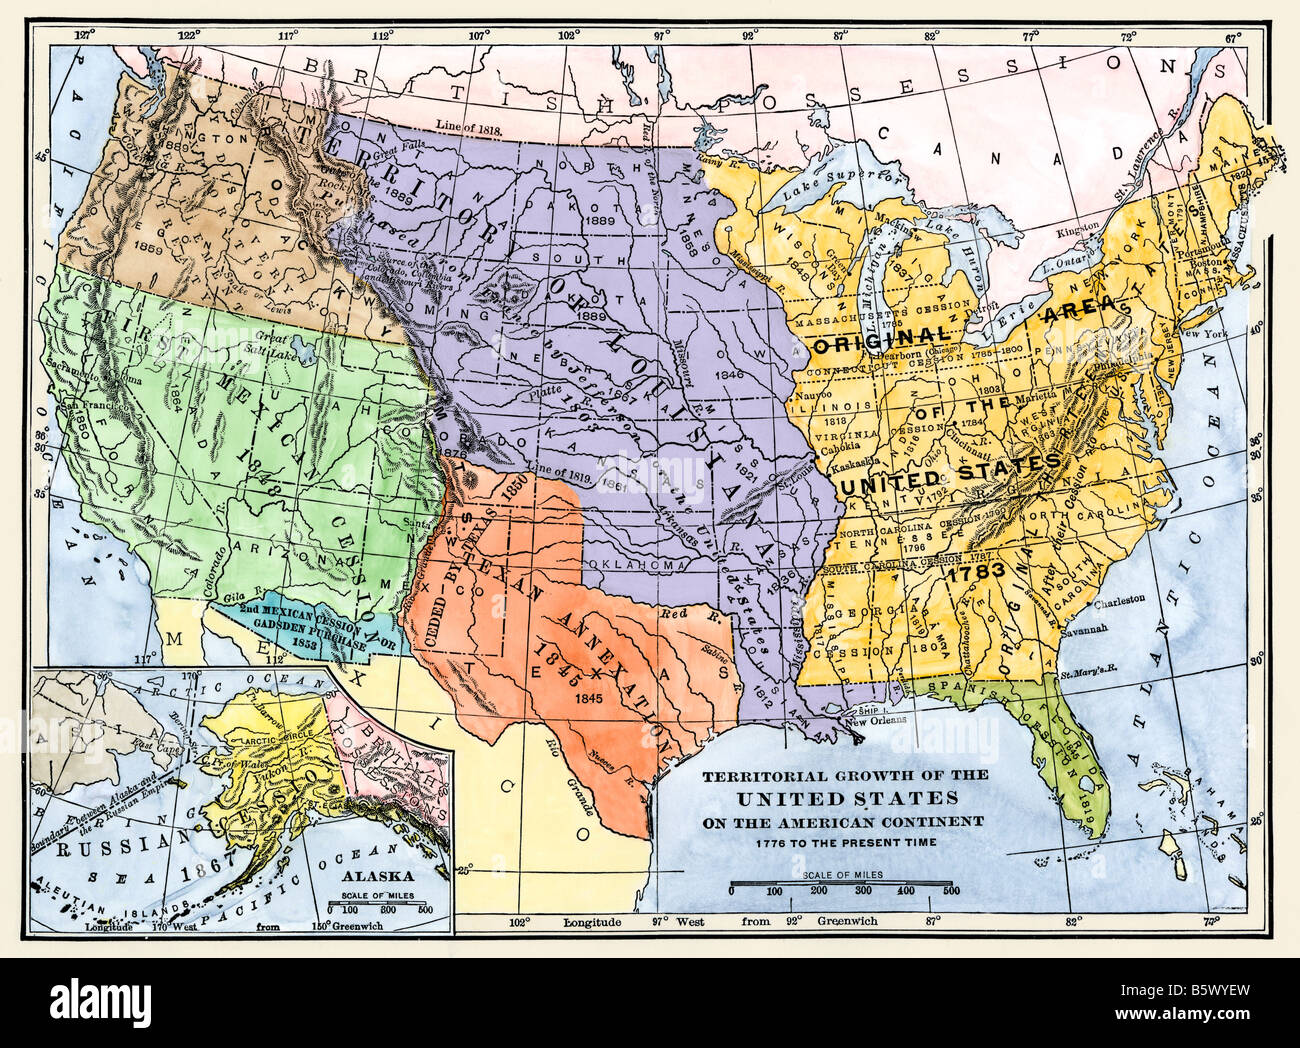 Image of: Map Showing Territorial Growth Of The Continental Us 1776 To 1899 Stock Photo Alamy